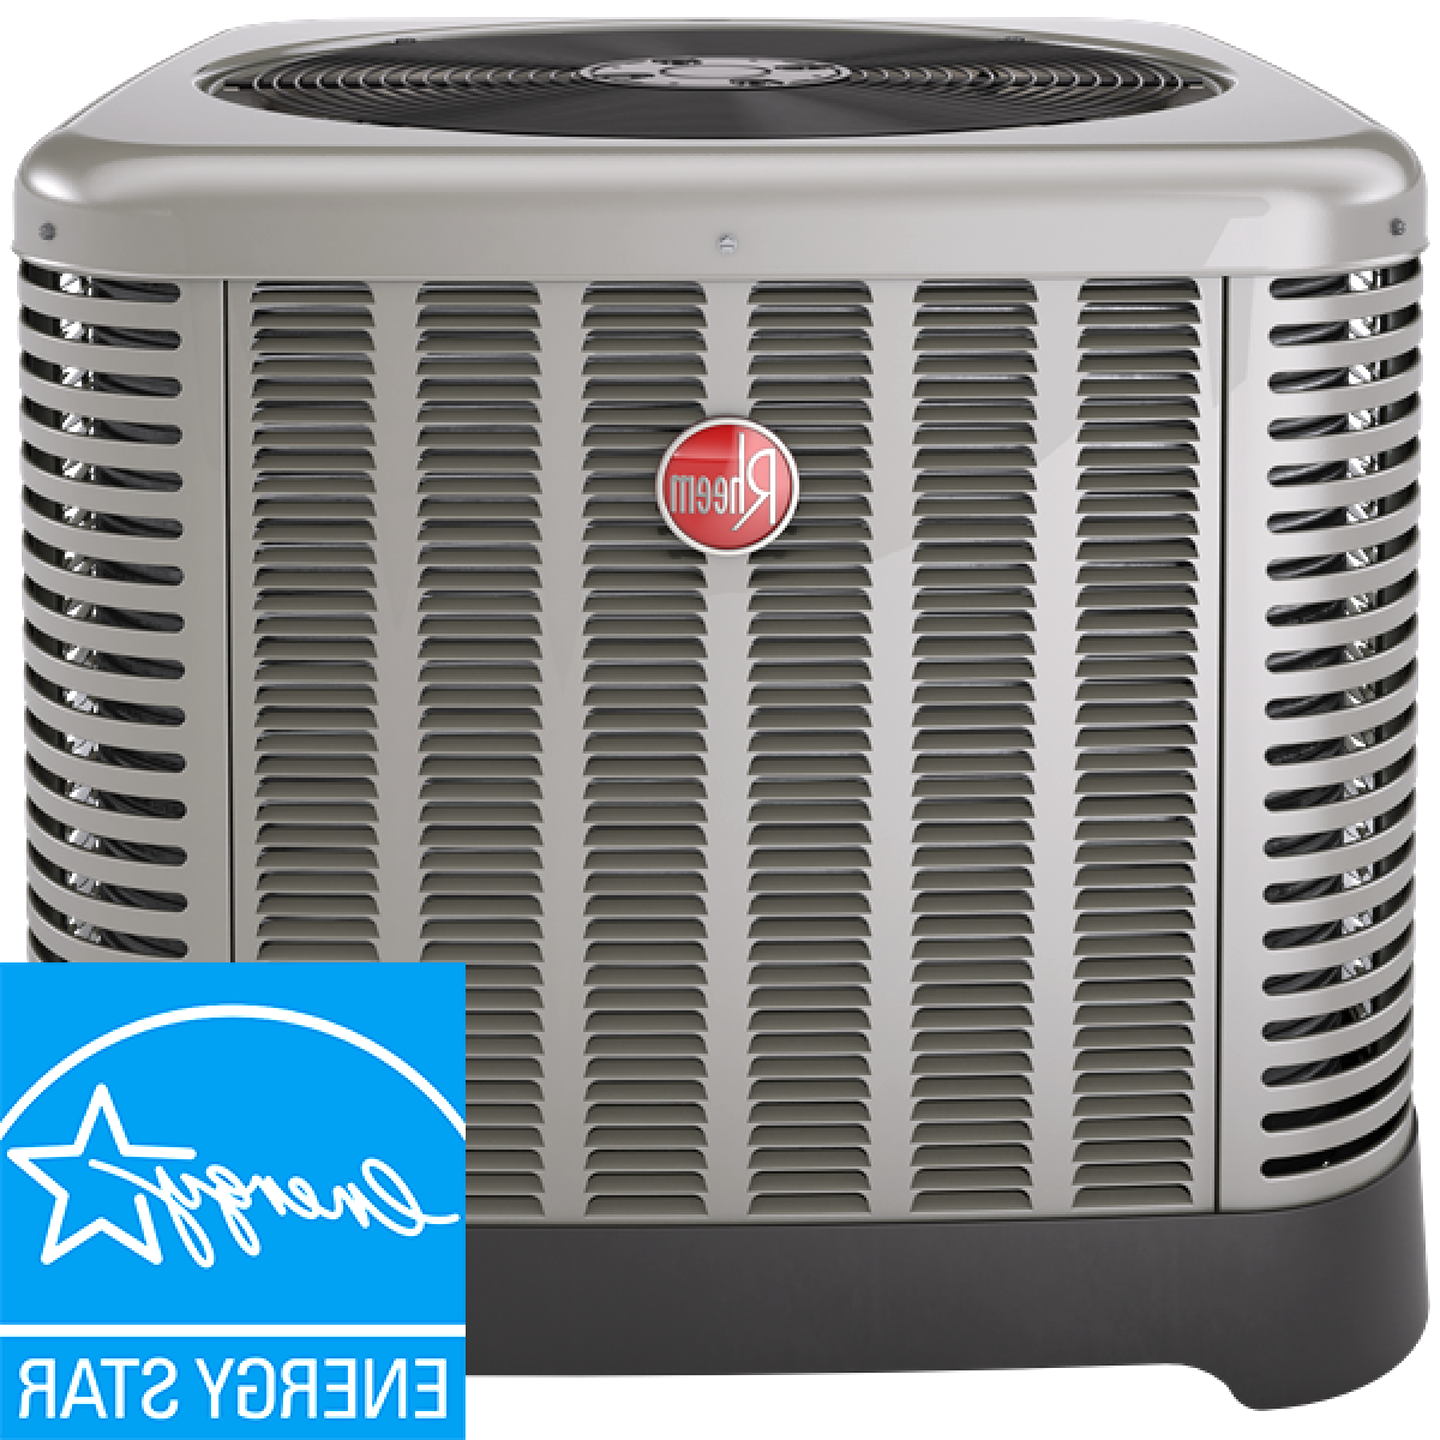 rheem air conditioner for sale